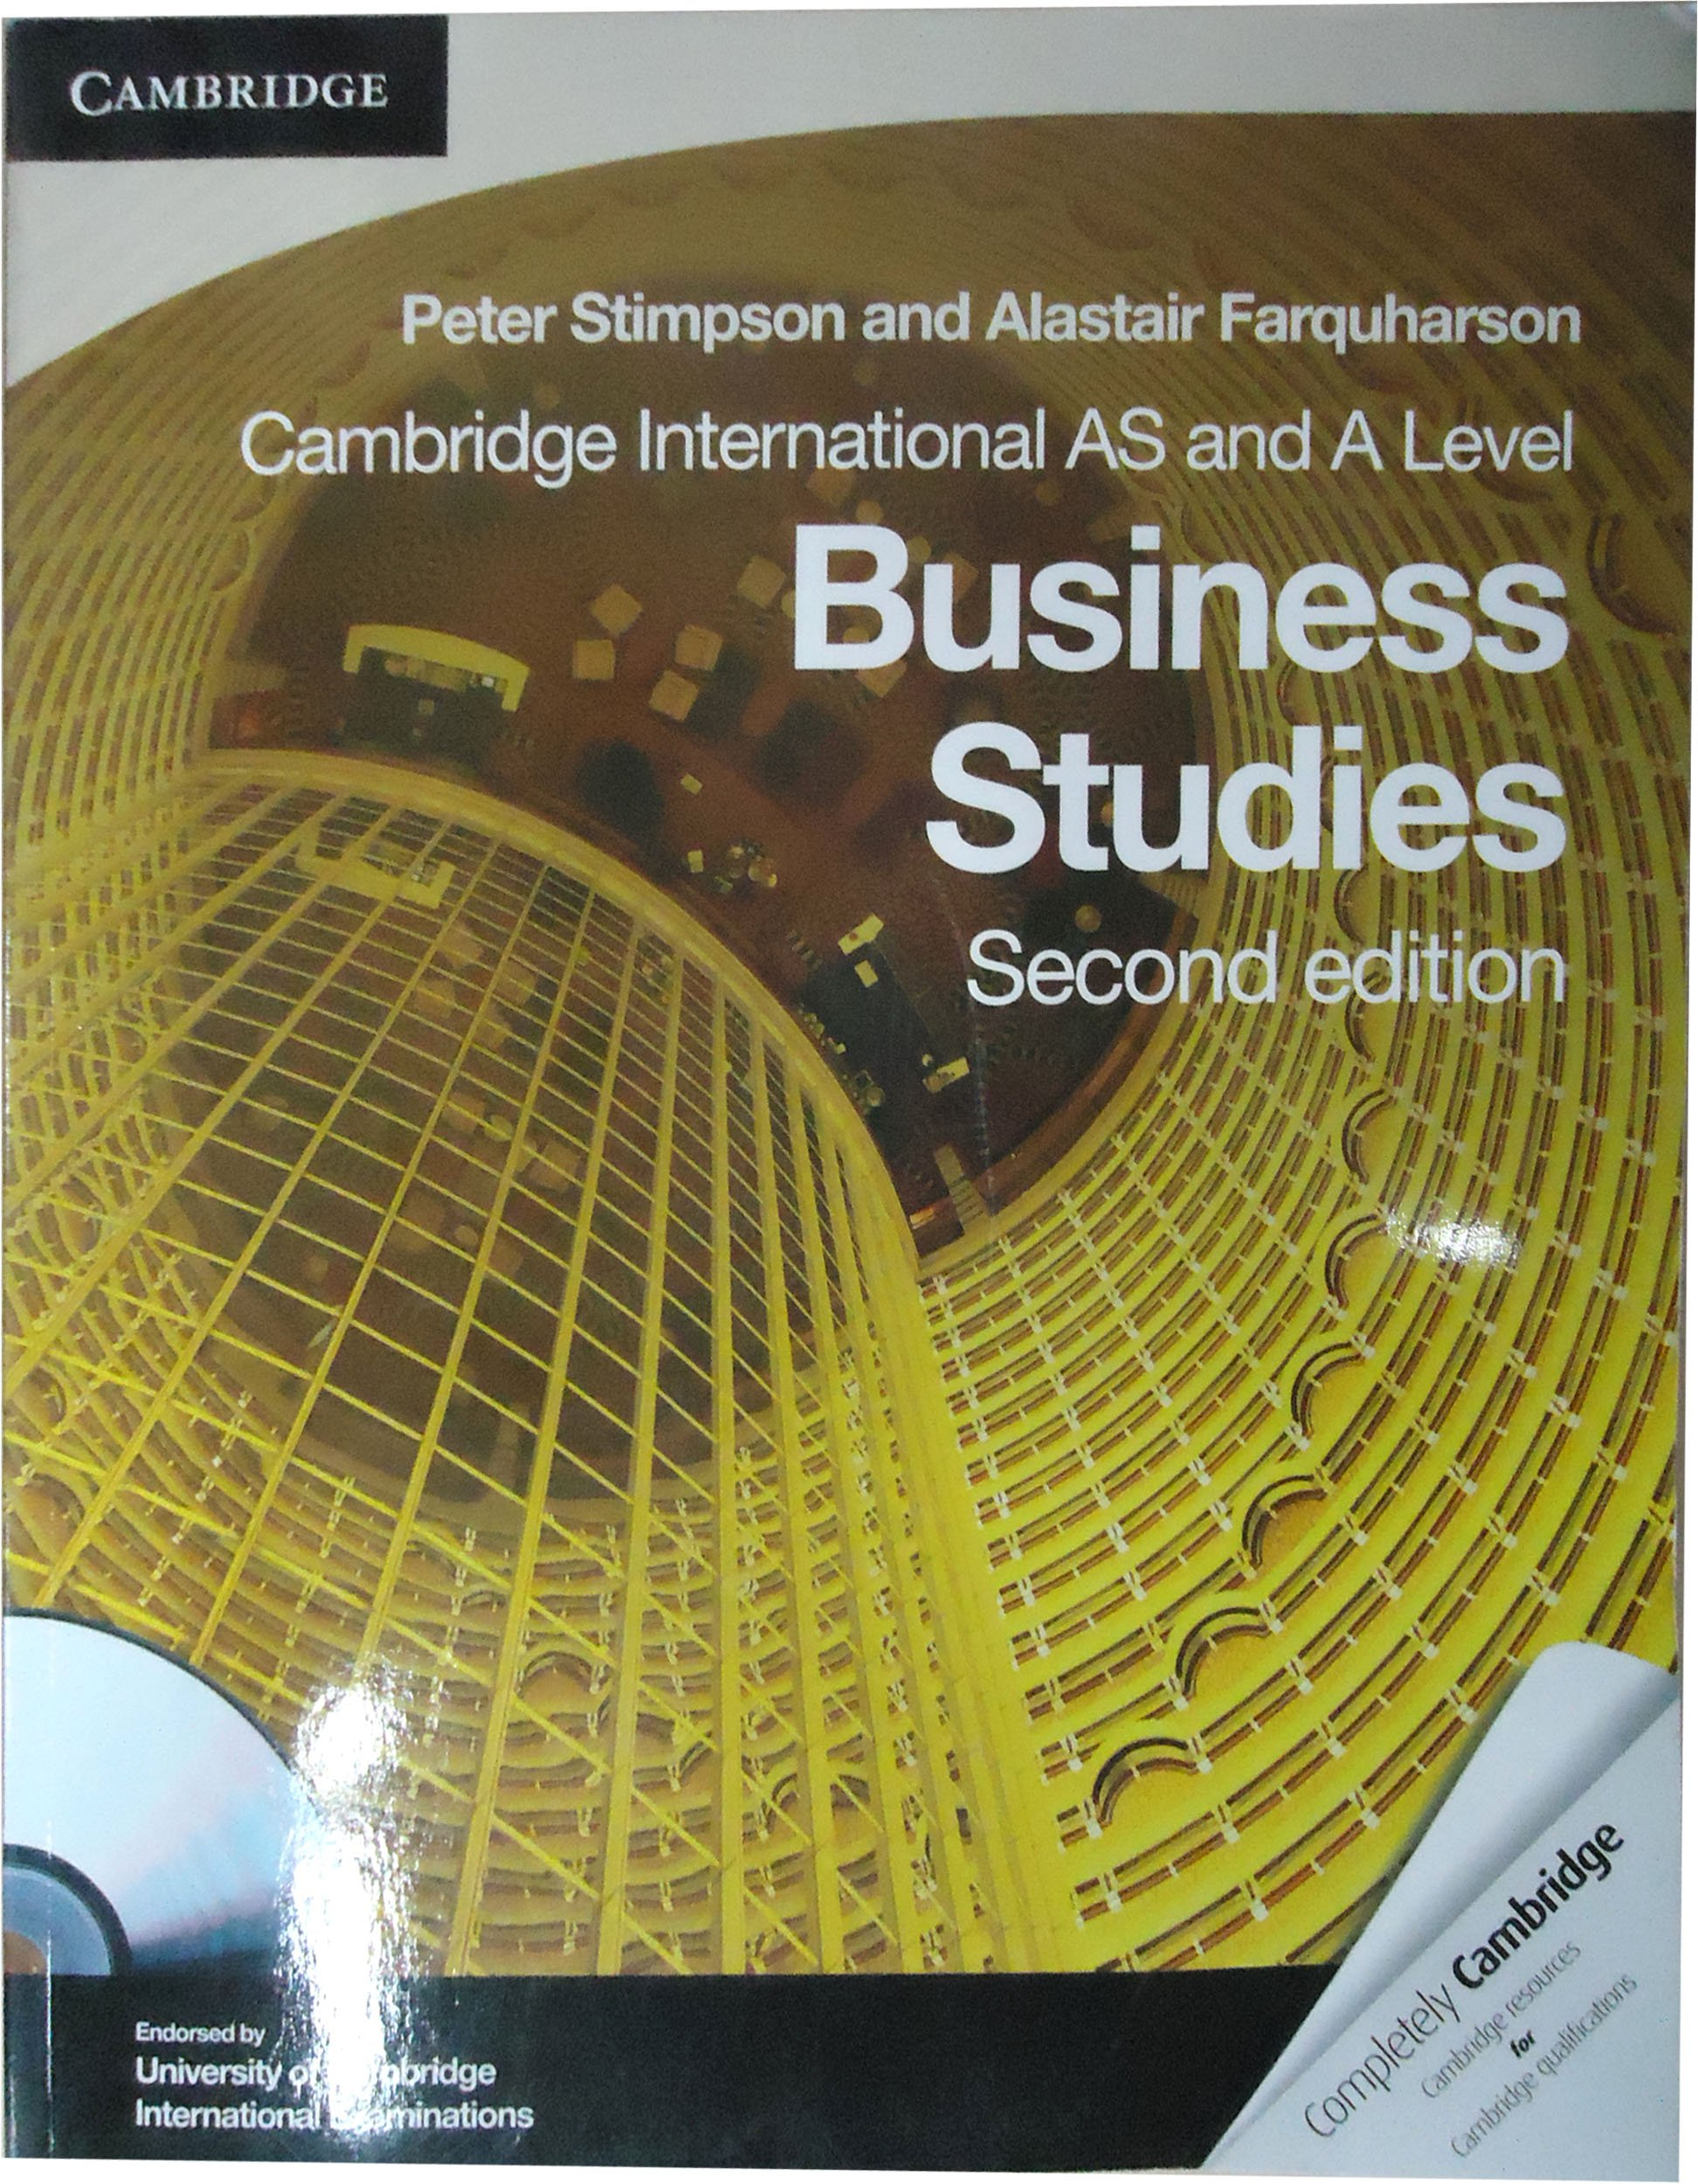 Cambridge international as and a level business studies coursebook cambridge international as and a level business studies coursebook with cd rom cambridge international examinations peter stimpson alastair farquharson fandeluxe